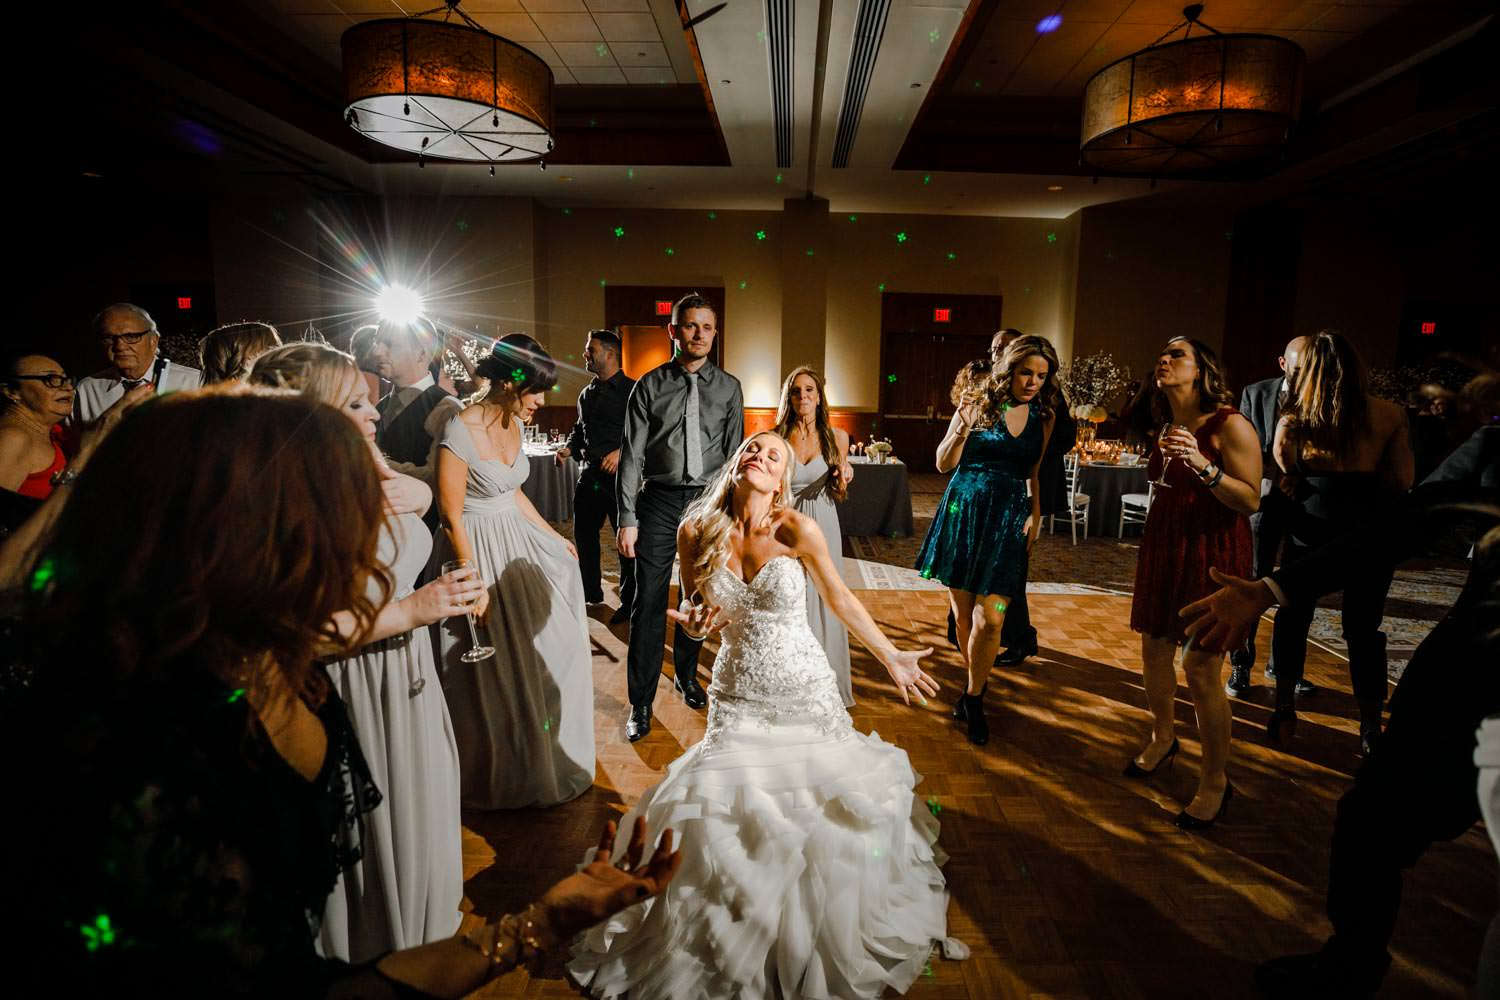 bride on dance floor at wedding reception